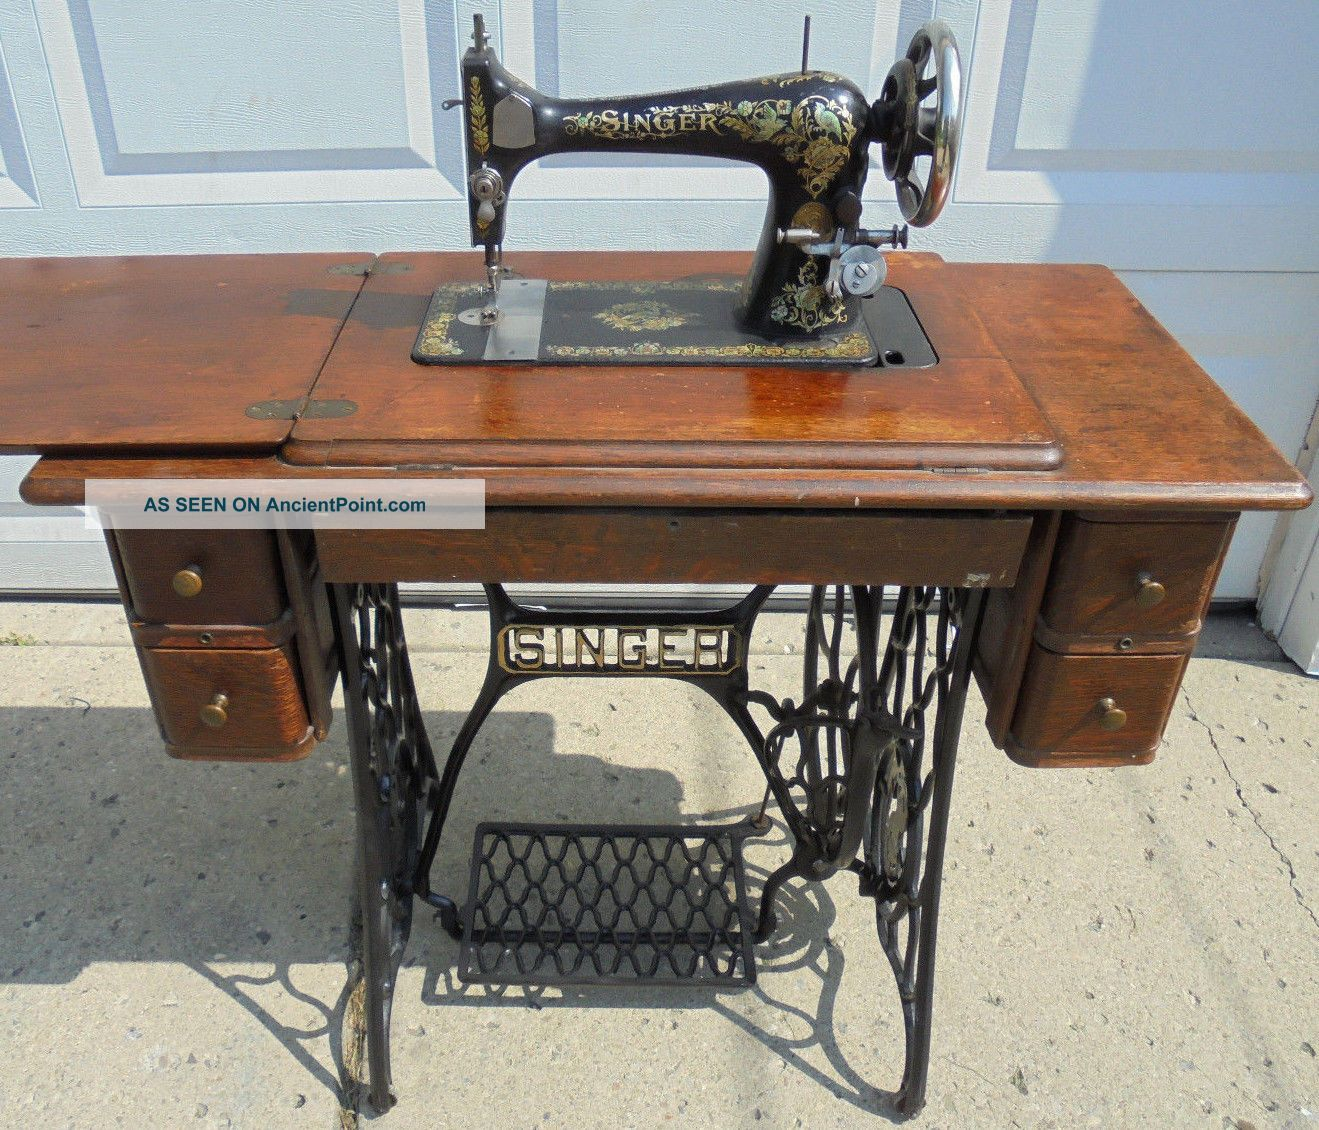 1909 Model 27 Singer Treadle Sewing Machine Industrial Strength W/ Attachments Other Antique Sewing photo